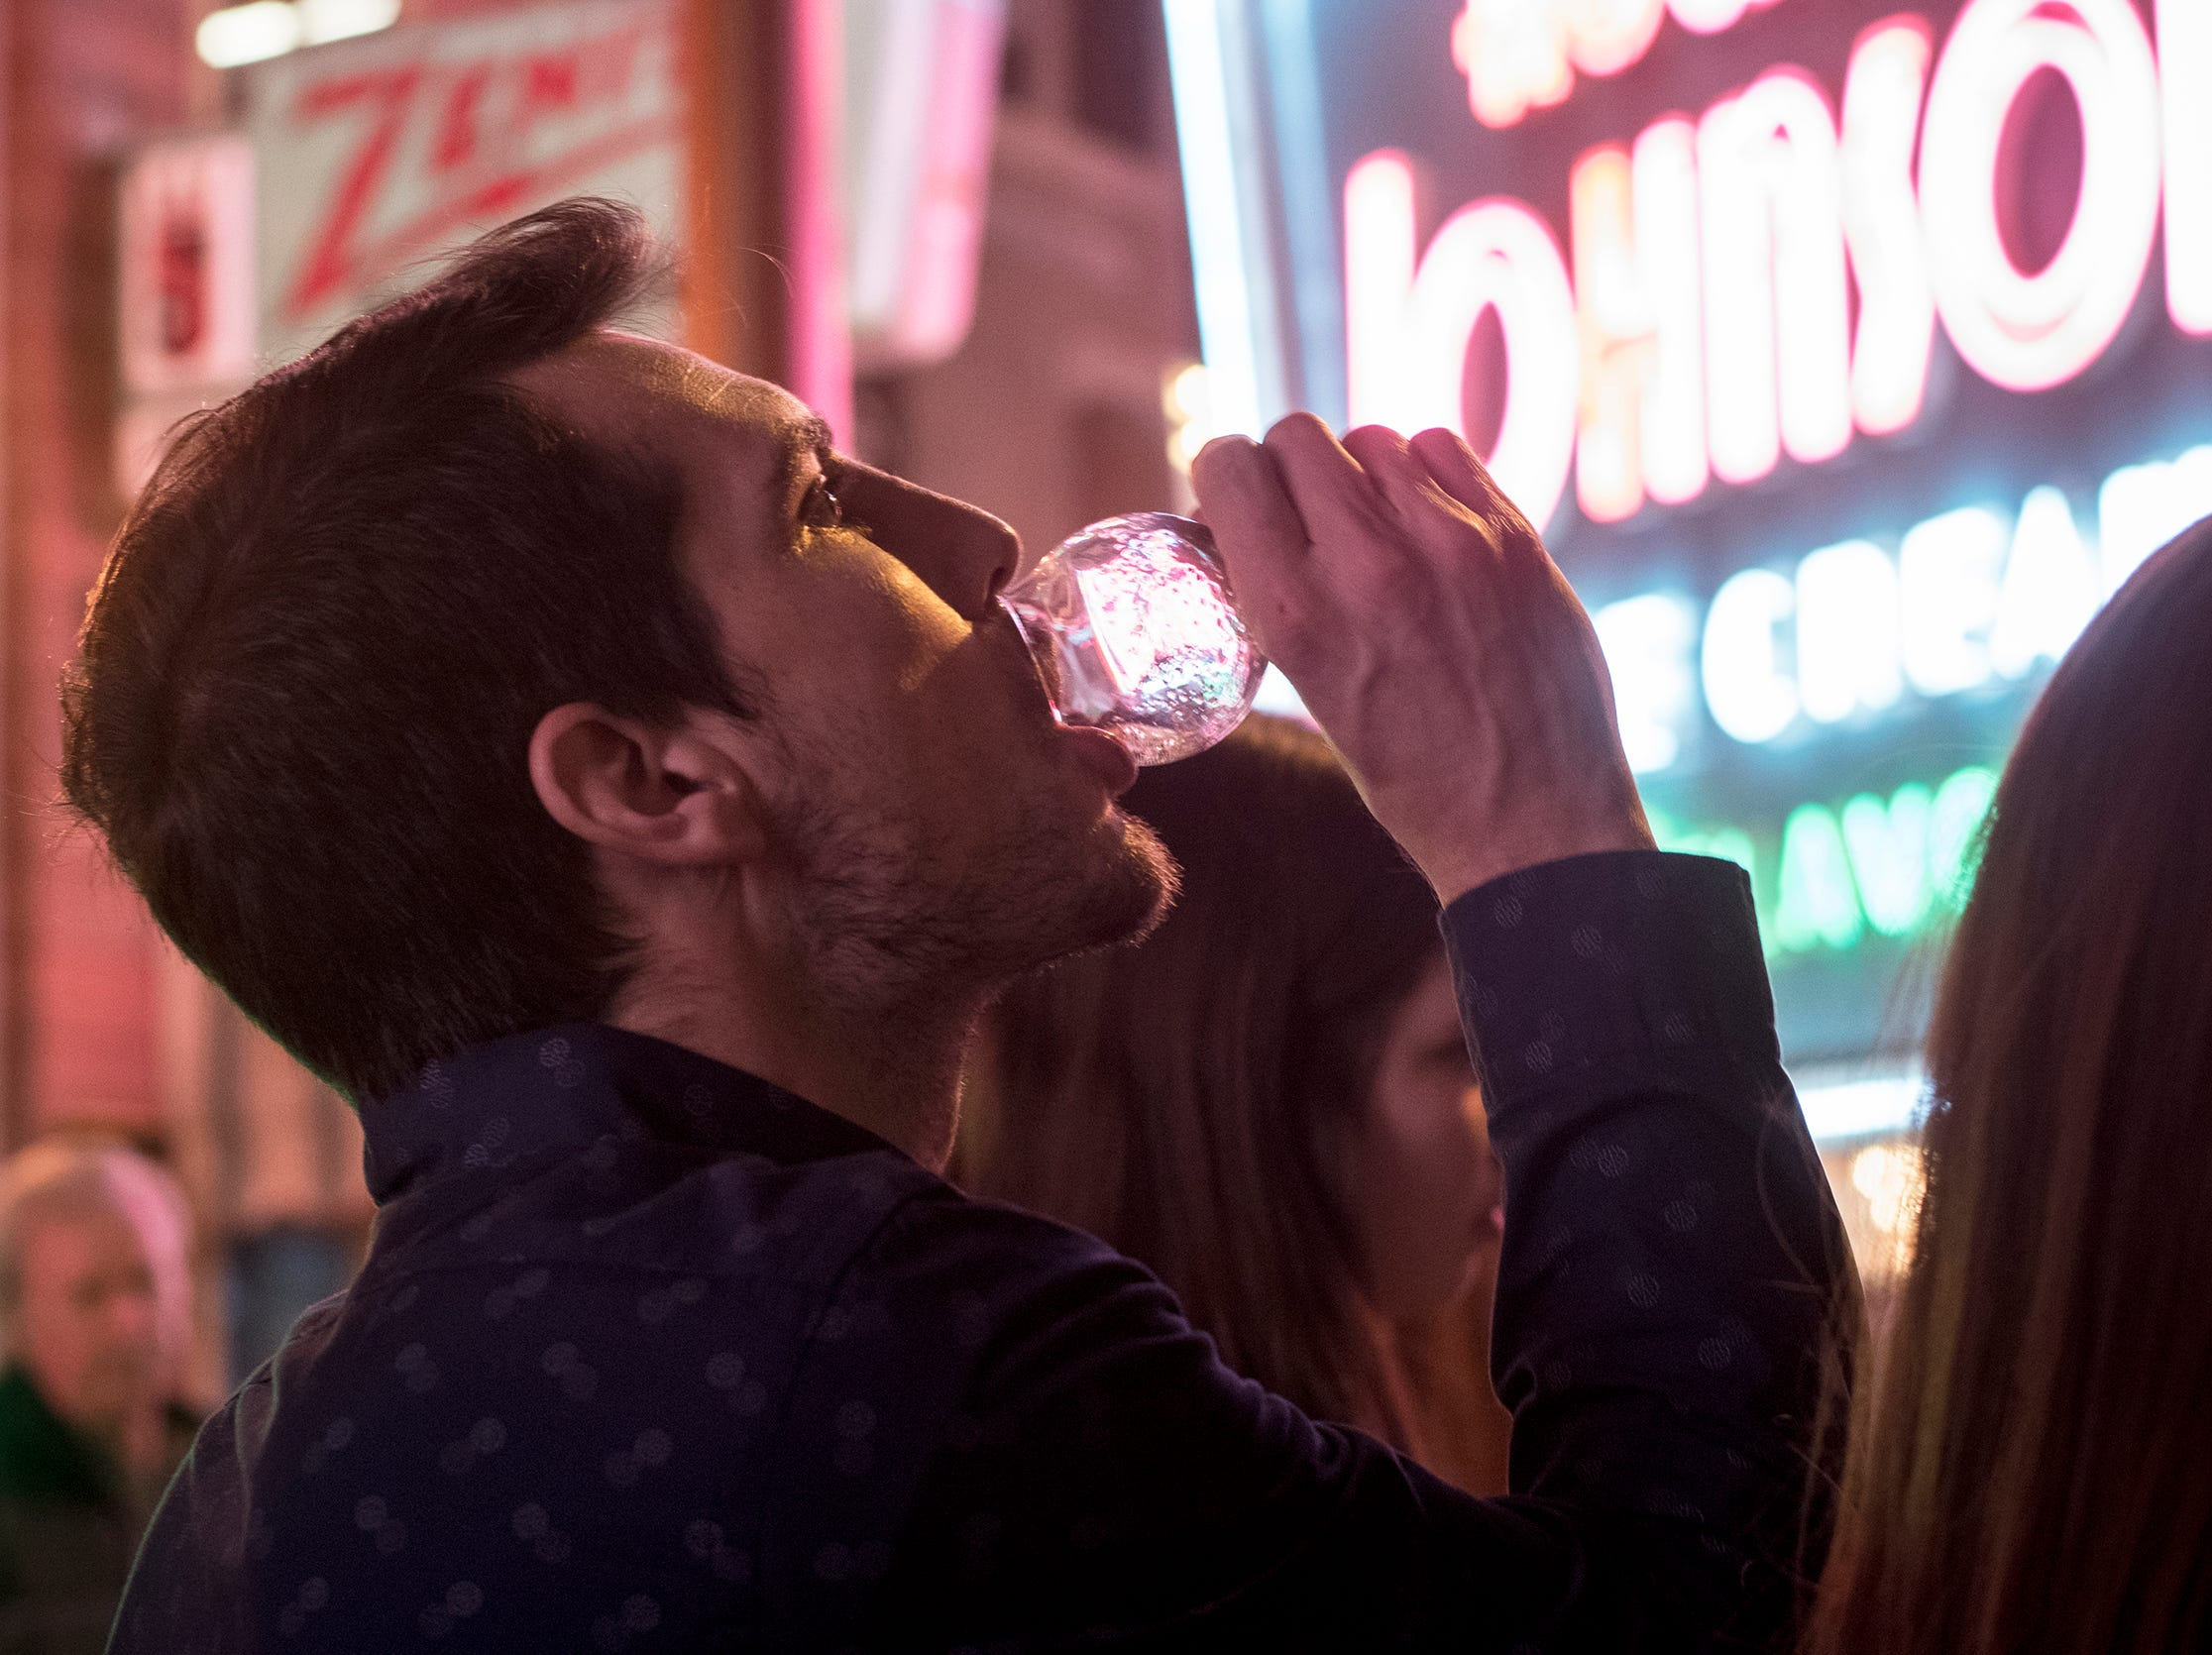 Alex Dieterle of Mumford Heights finishes a glass of Rhinegeist beer during Signs and Suds at the American Sign Museum Thursday, January 24, 2019 in Cincinnati, Ohio.